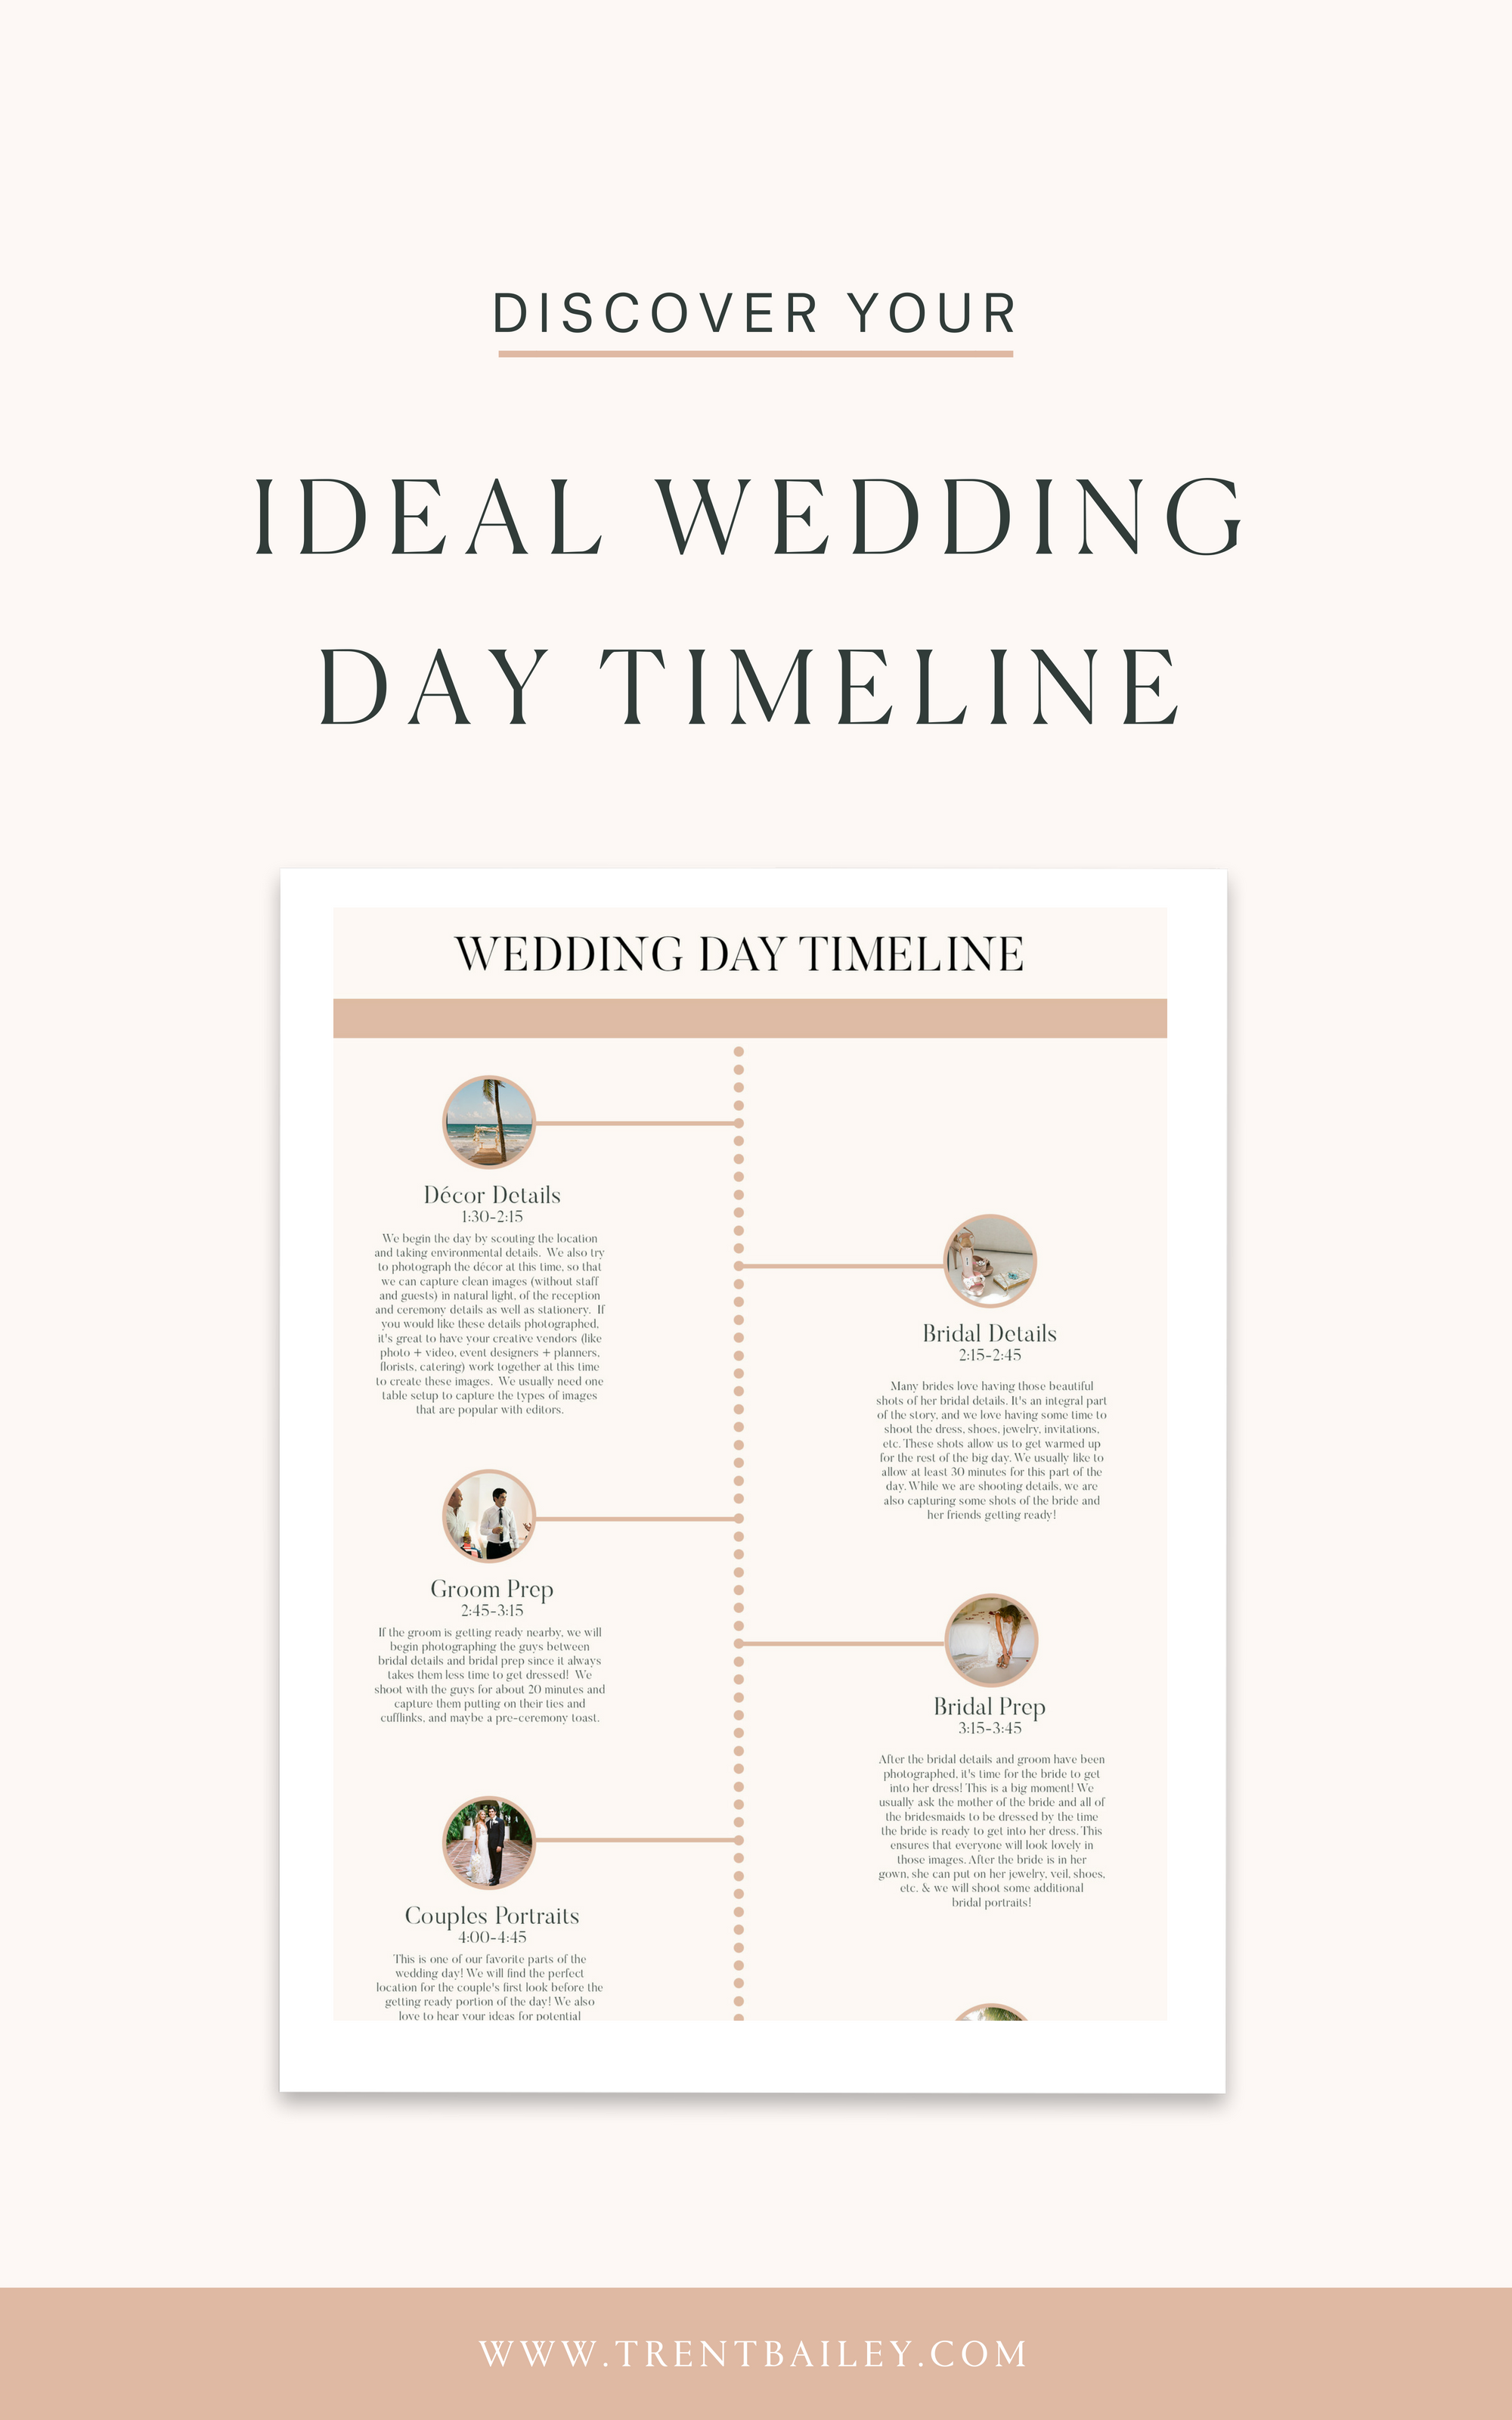 IDEAL WEDDING DAY TIMELINE - IDEAL WEDDING DAY TIMELINE